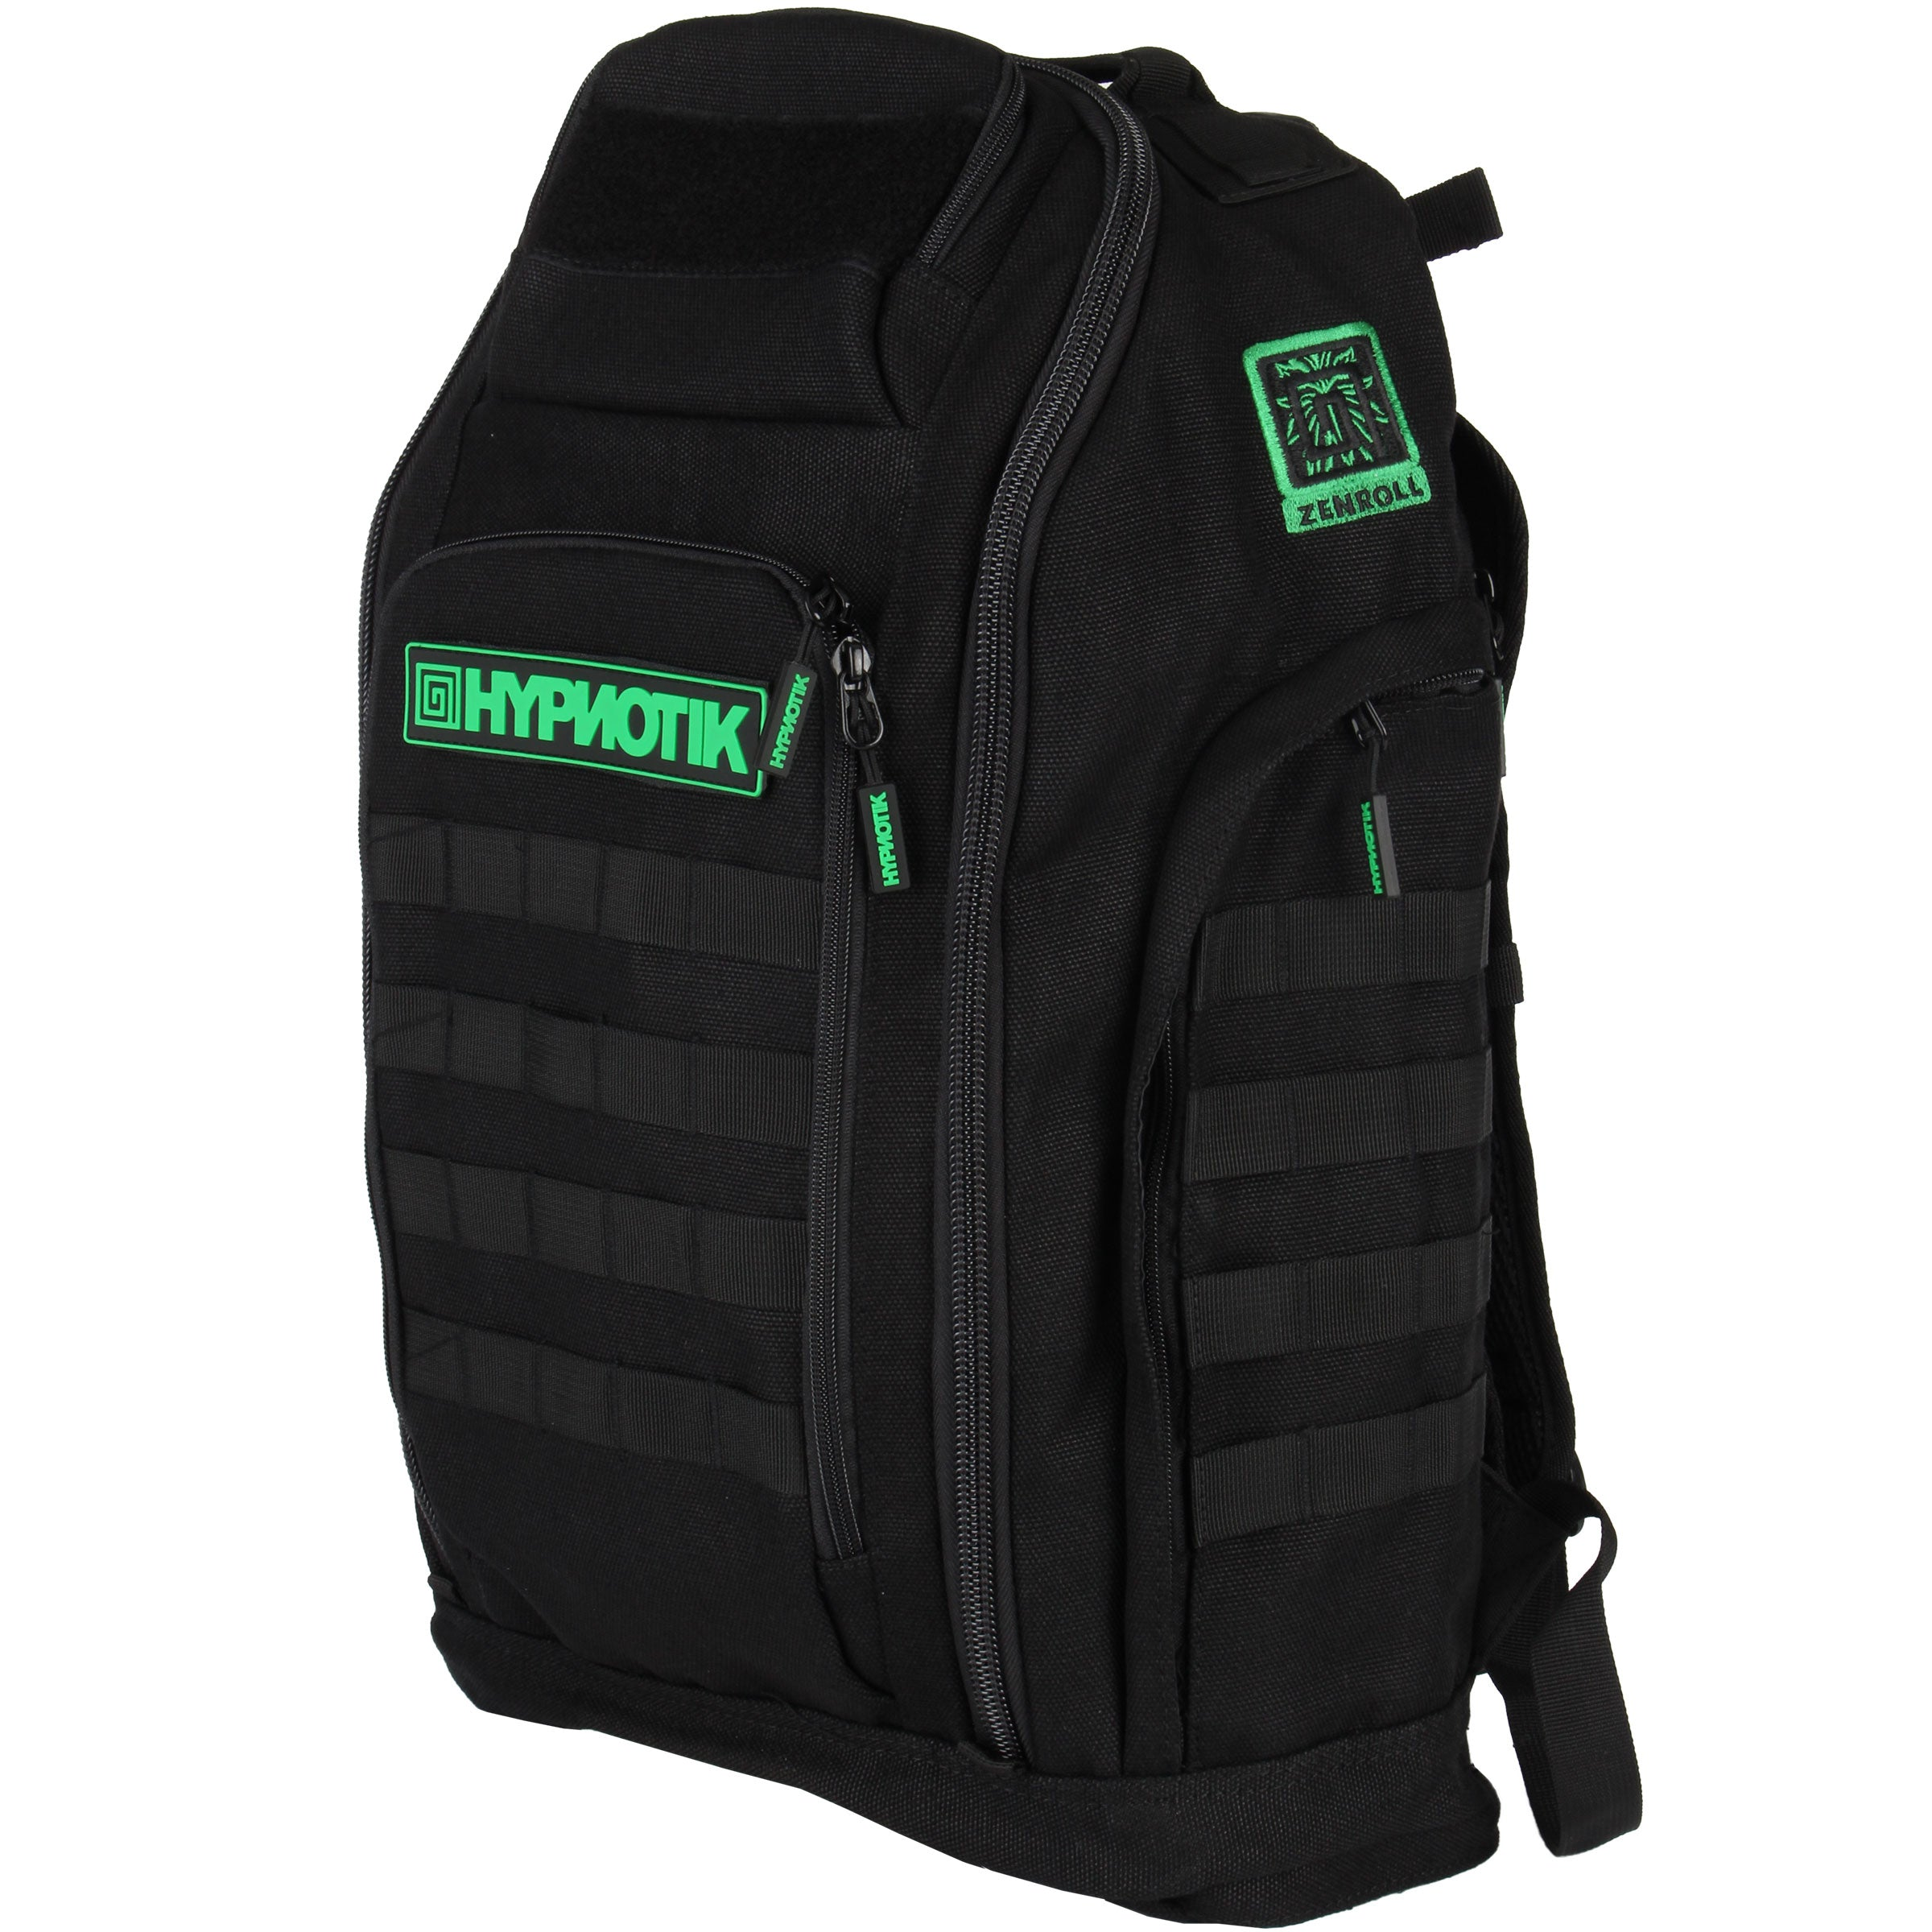 Image of Hypnotik ZR Competition Day Hemp Backpack